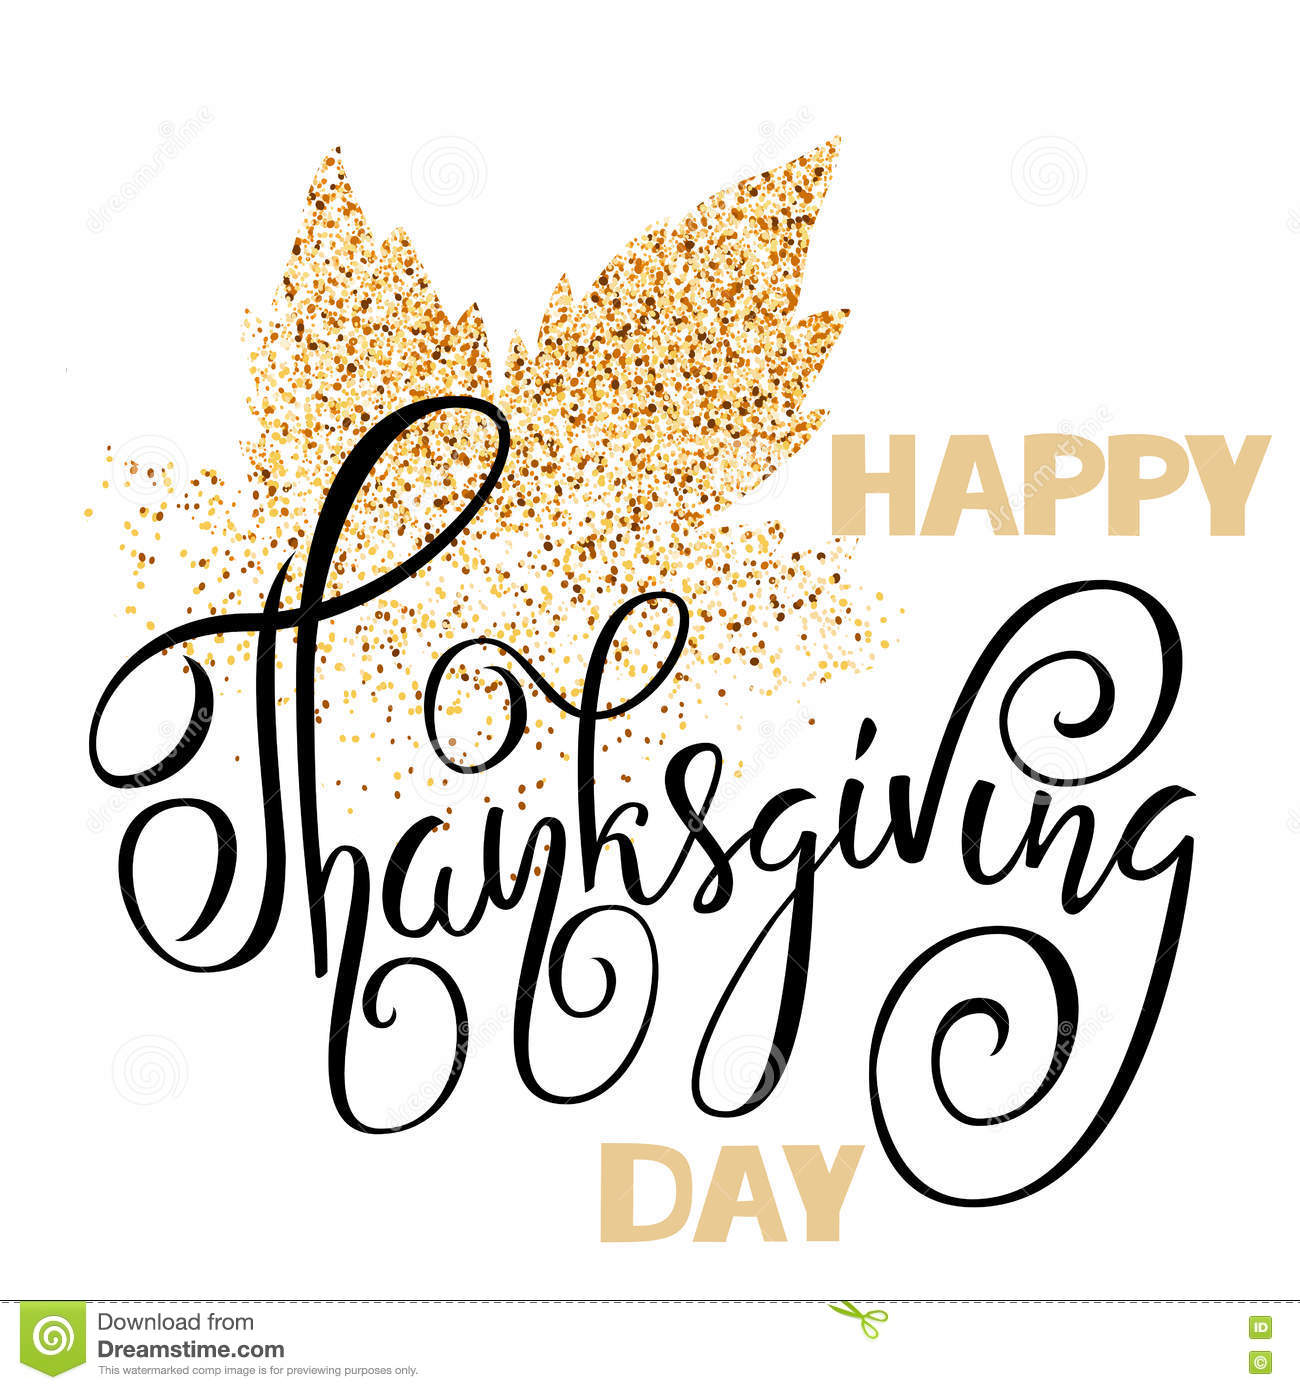 Happy Thanksgiving Day Black Hand Lettering On White Background Greeting Card Gold Glitter Leaf Stock Vector